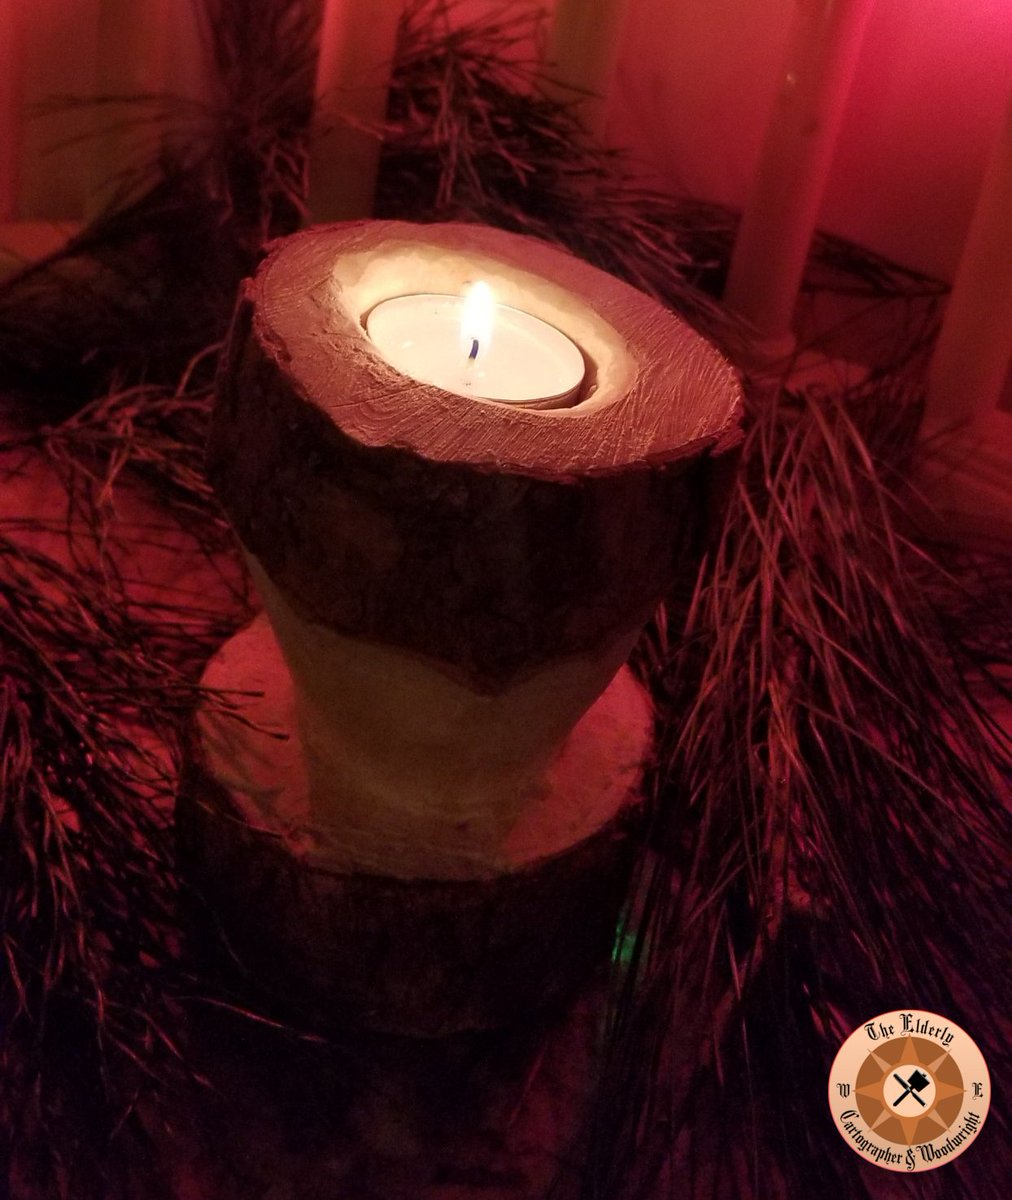 The Elderly Cartographer Woodwright On Twitter Rustic Pine Candle Holders Over The Last Two Weeks I Whittled Out These Pine Logs They Are Actually Made From The Base Of My Christmas